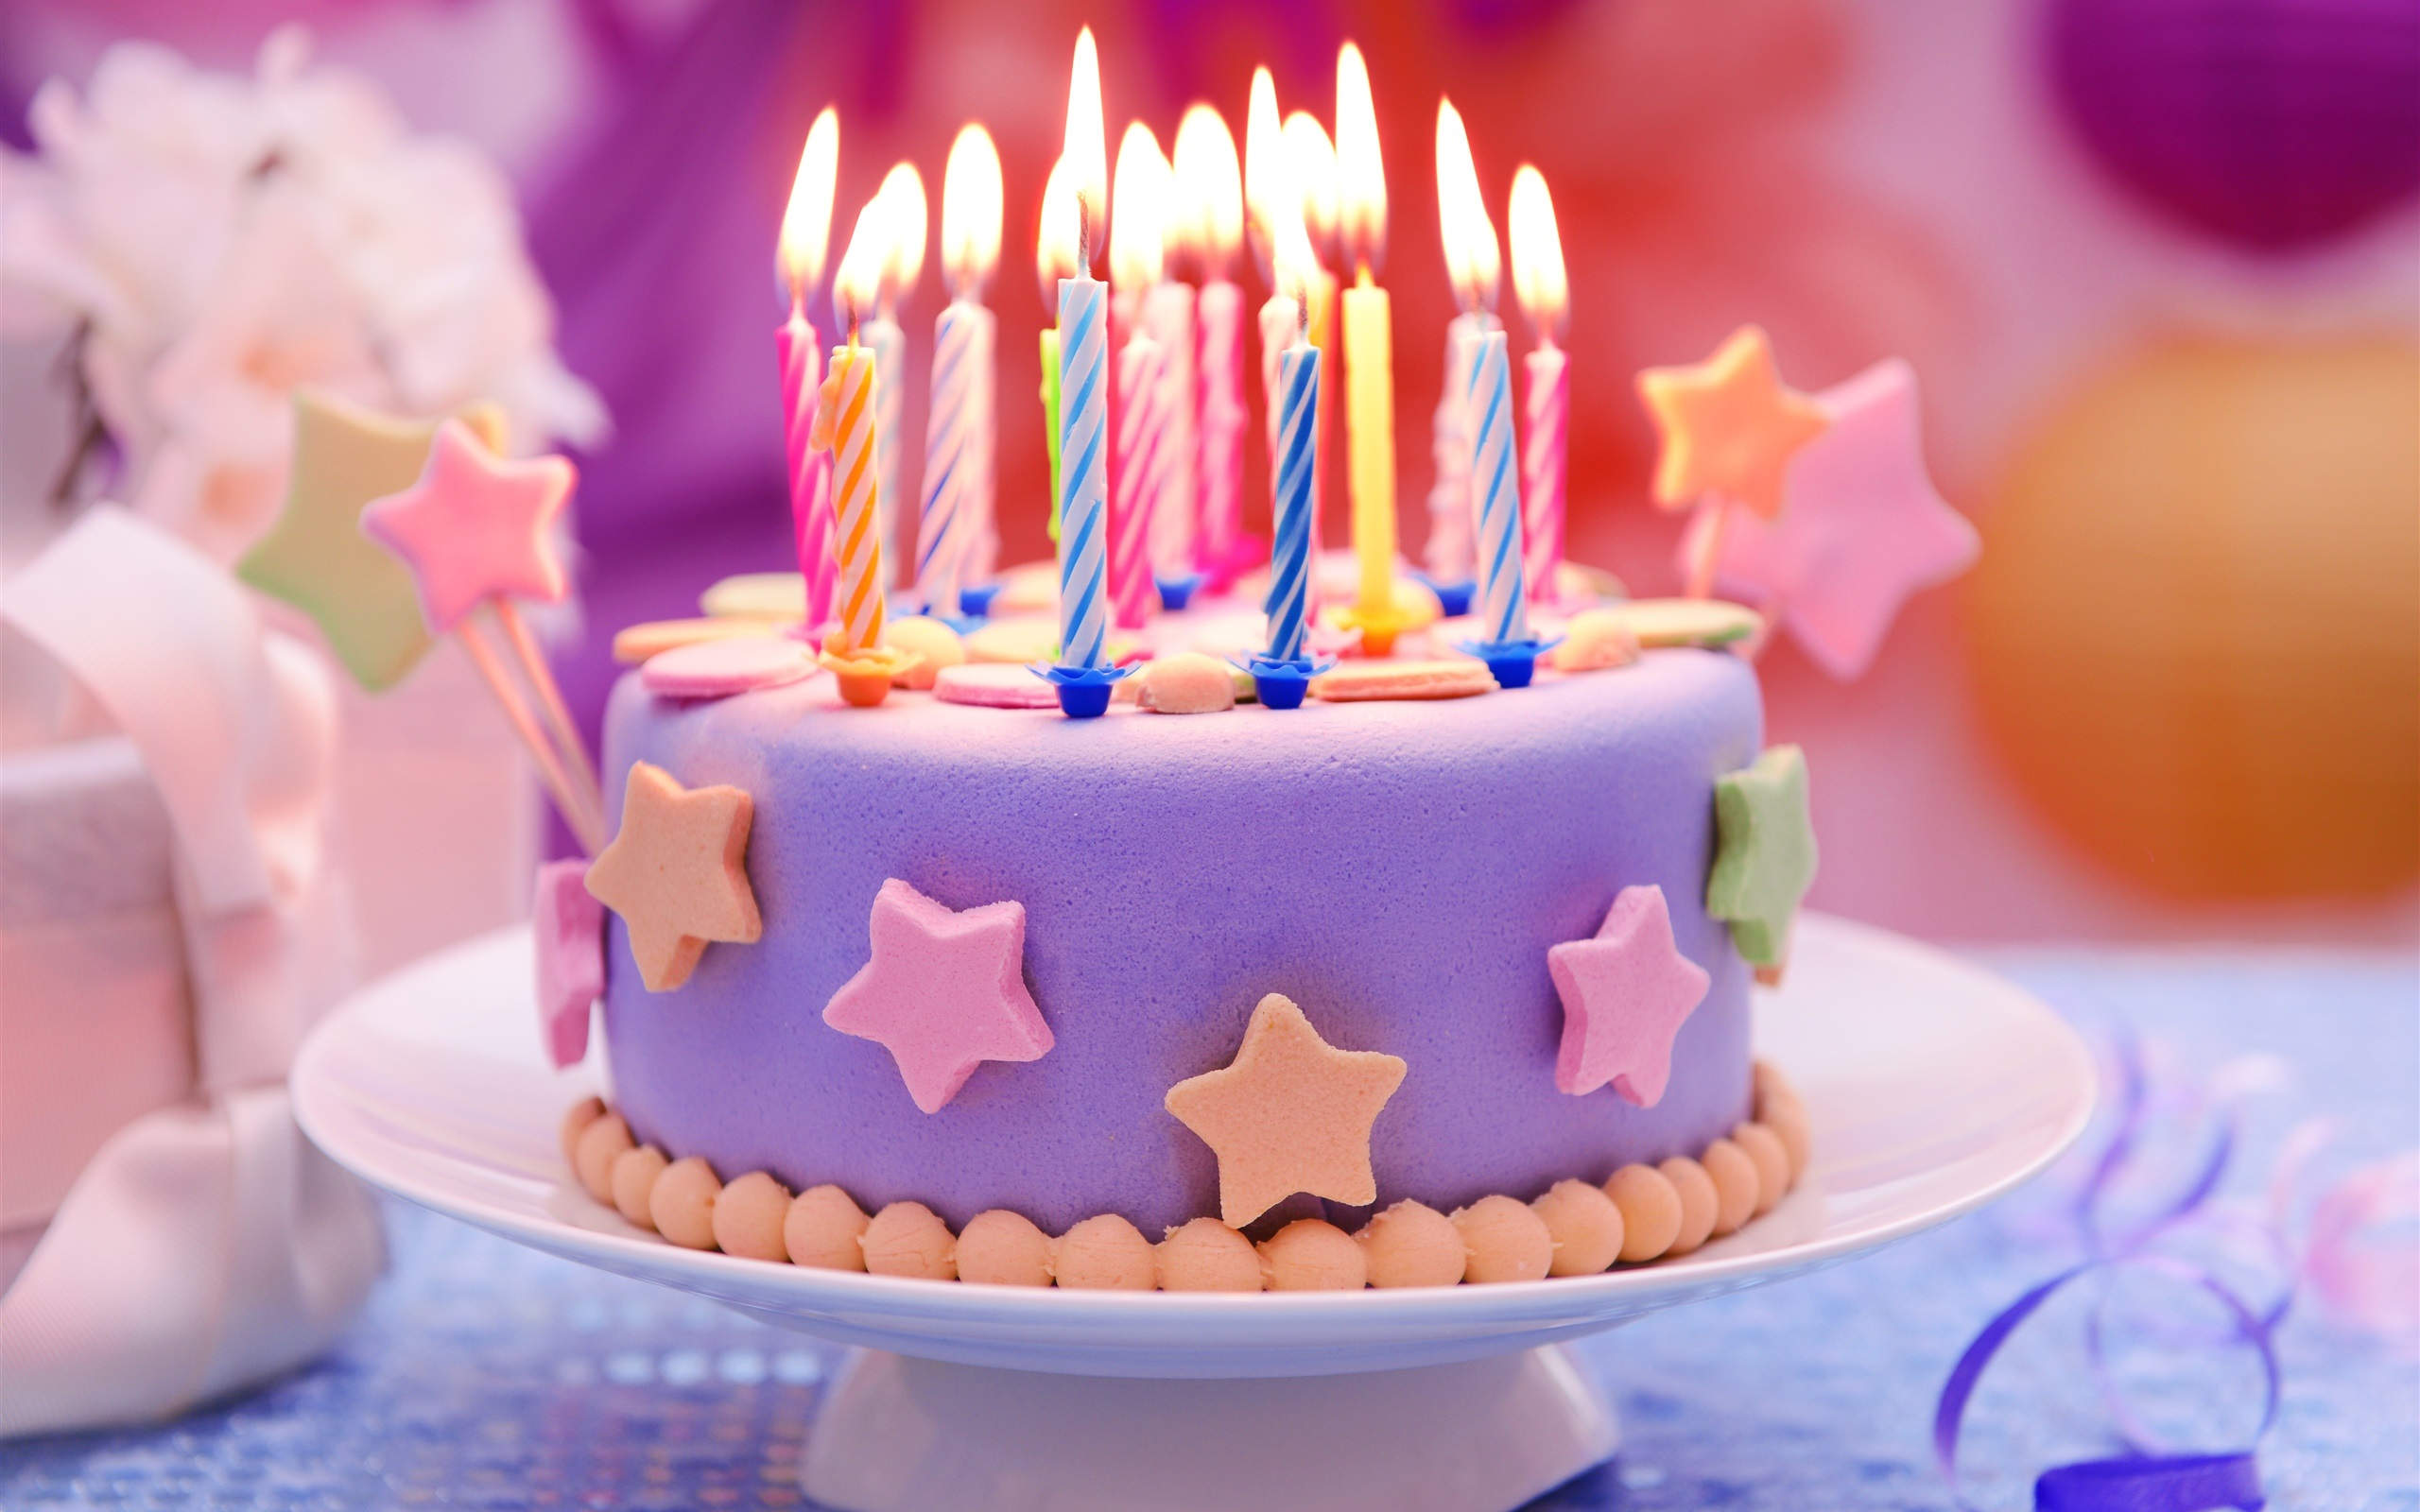 Happy-Birthday-cake-candles-stars_2560x1